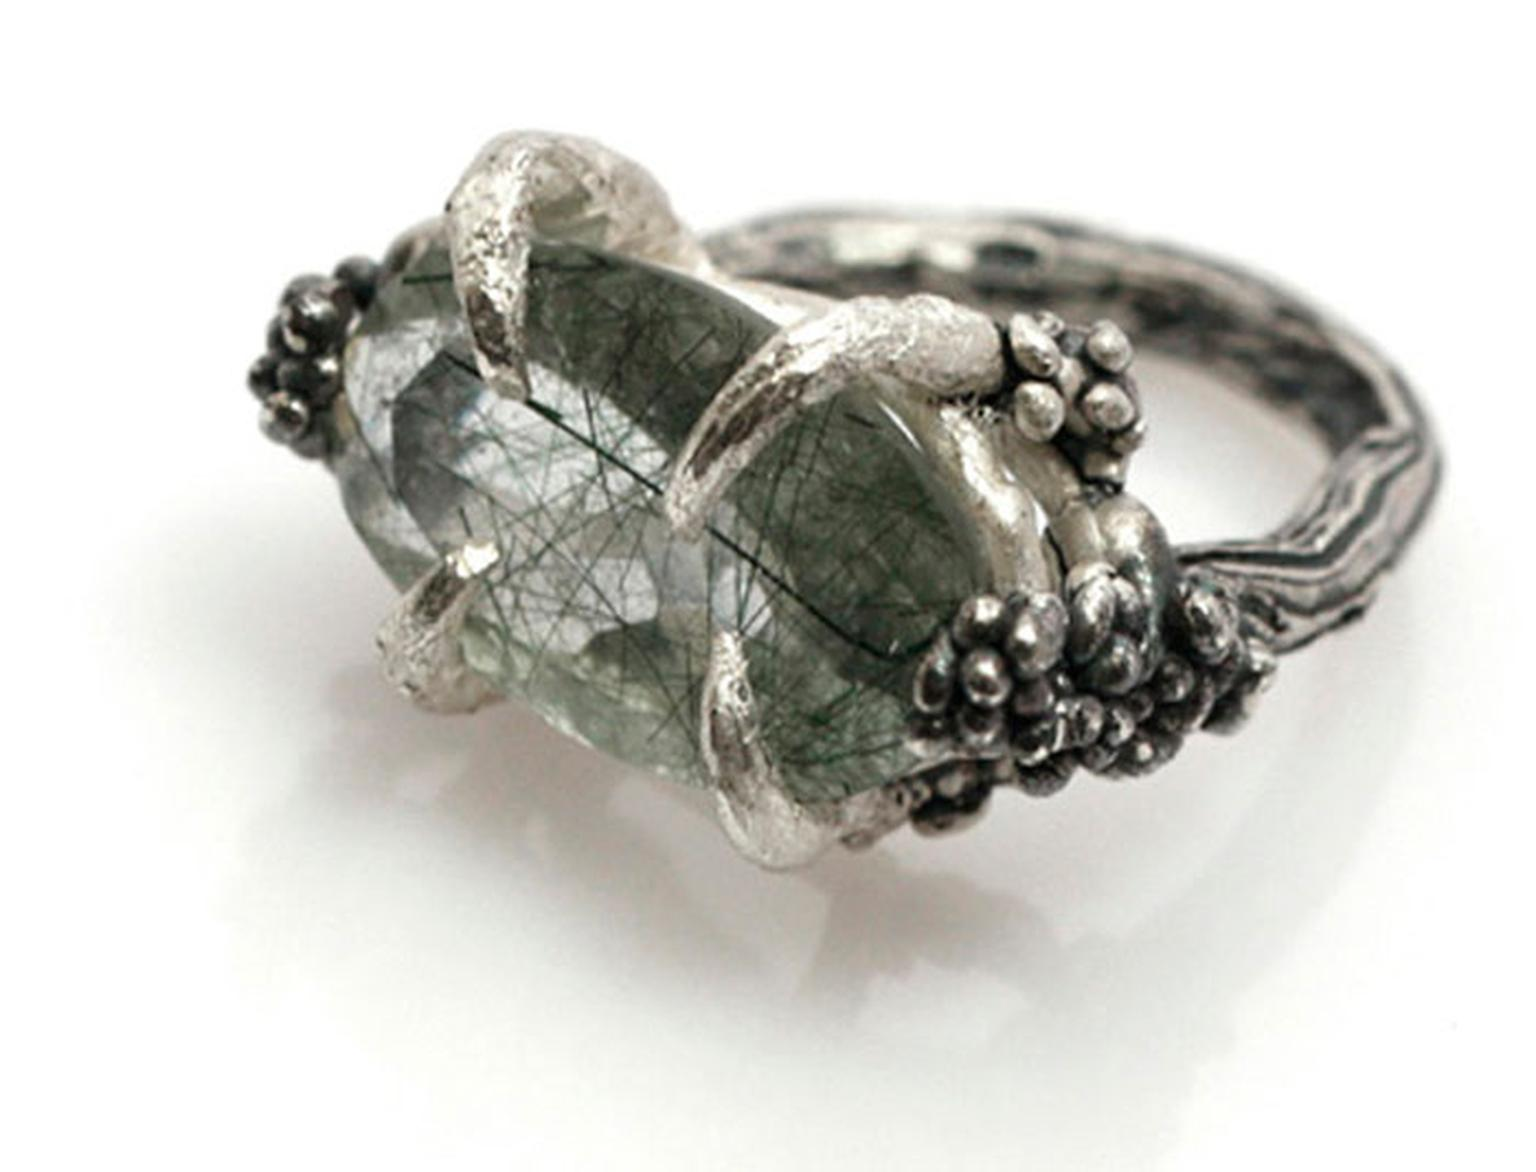 Eily-O-ConnellVenus--1480-euro---silver-oxidized-with-rutilated-quartz